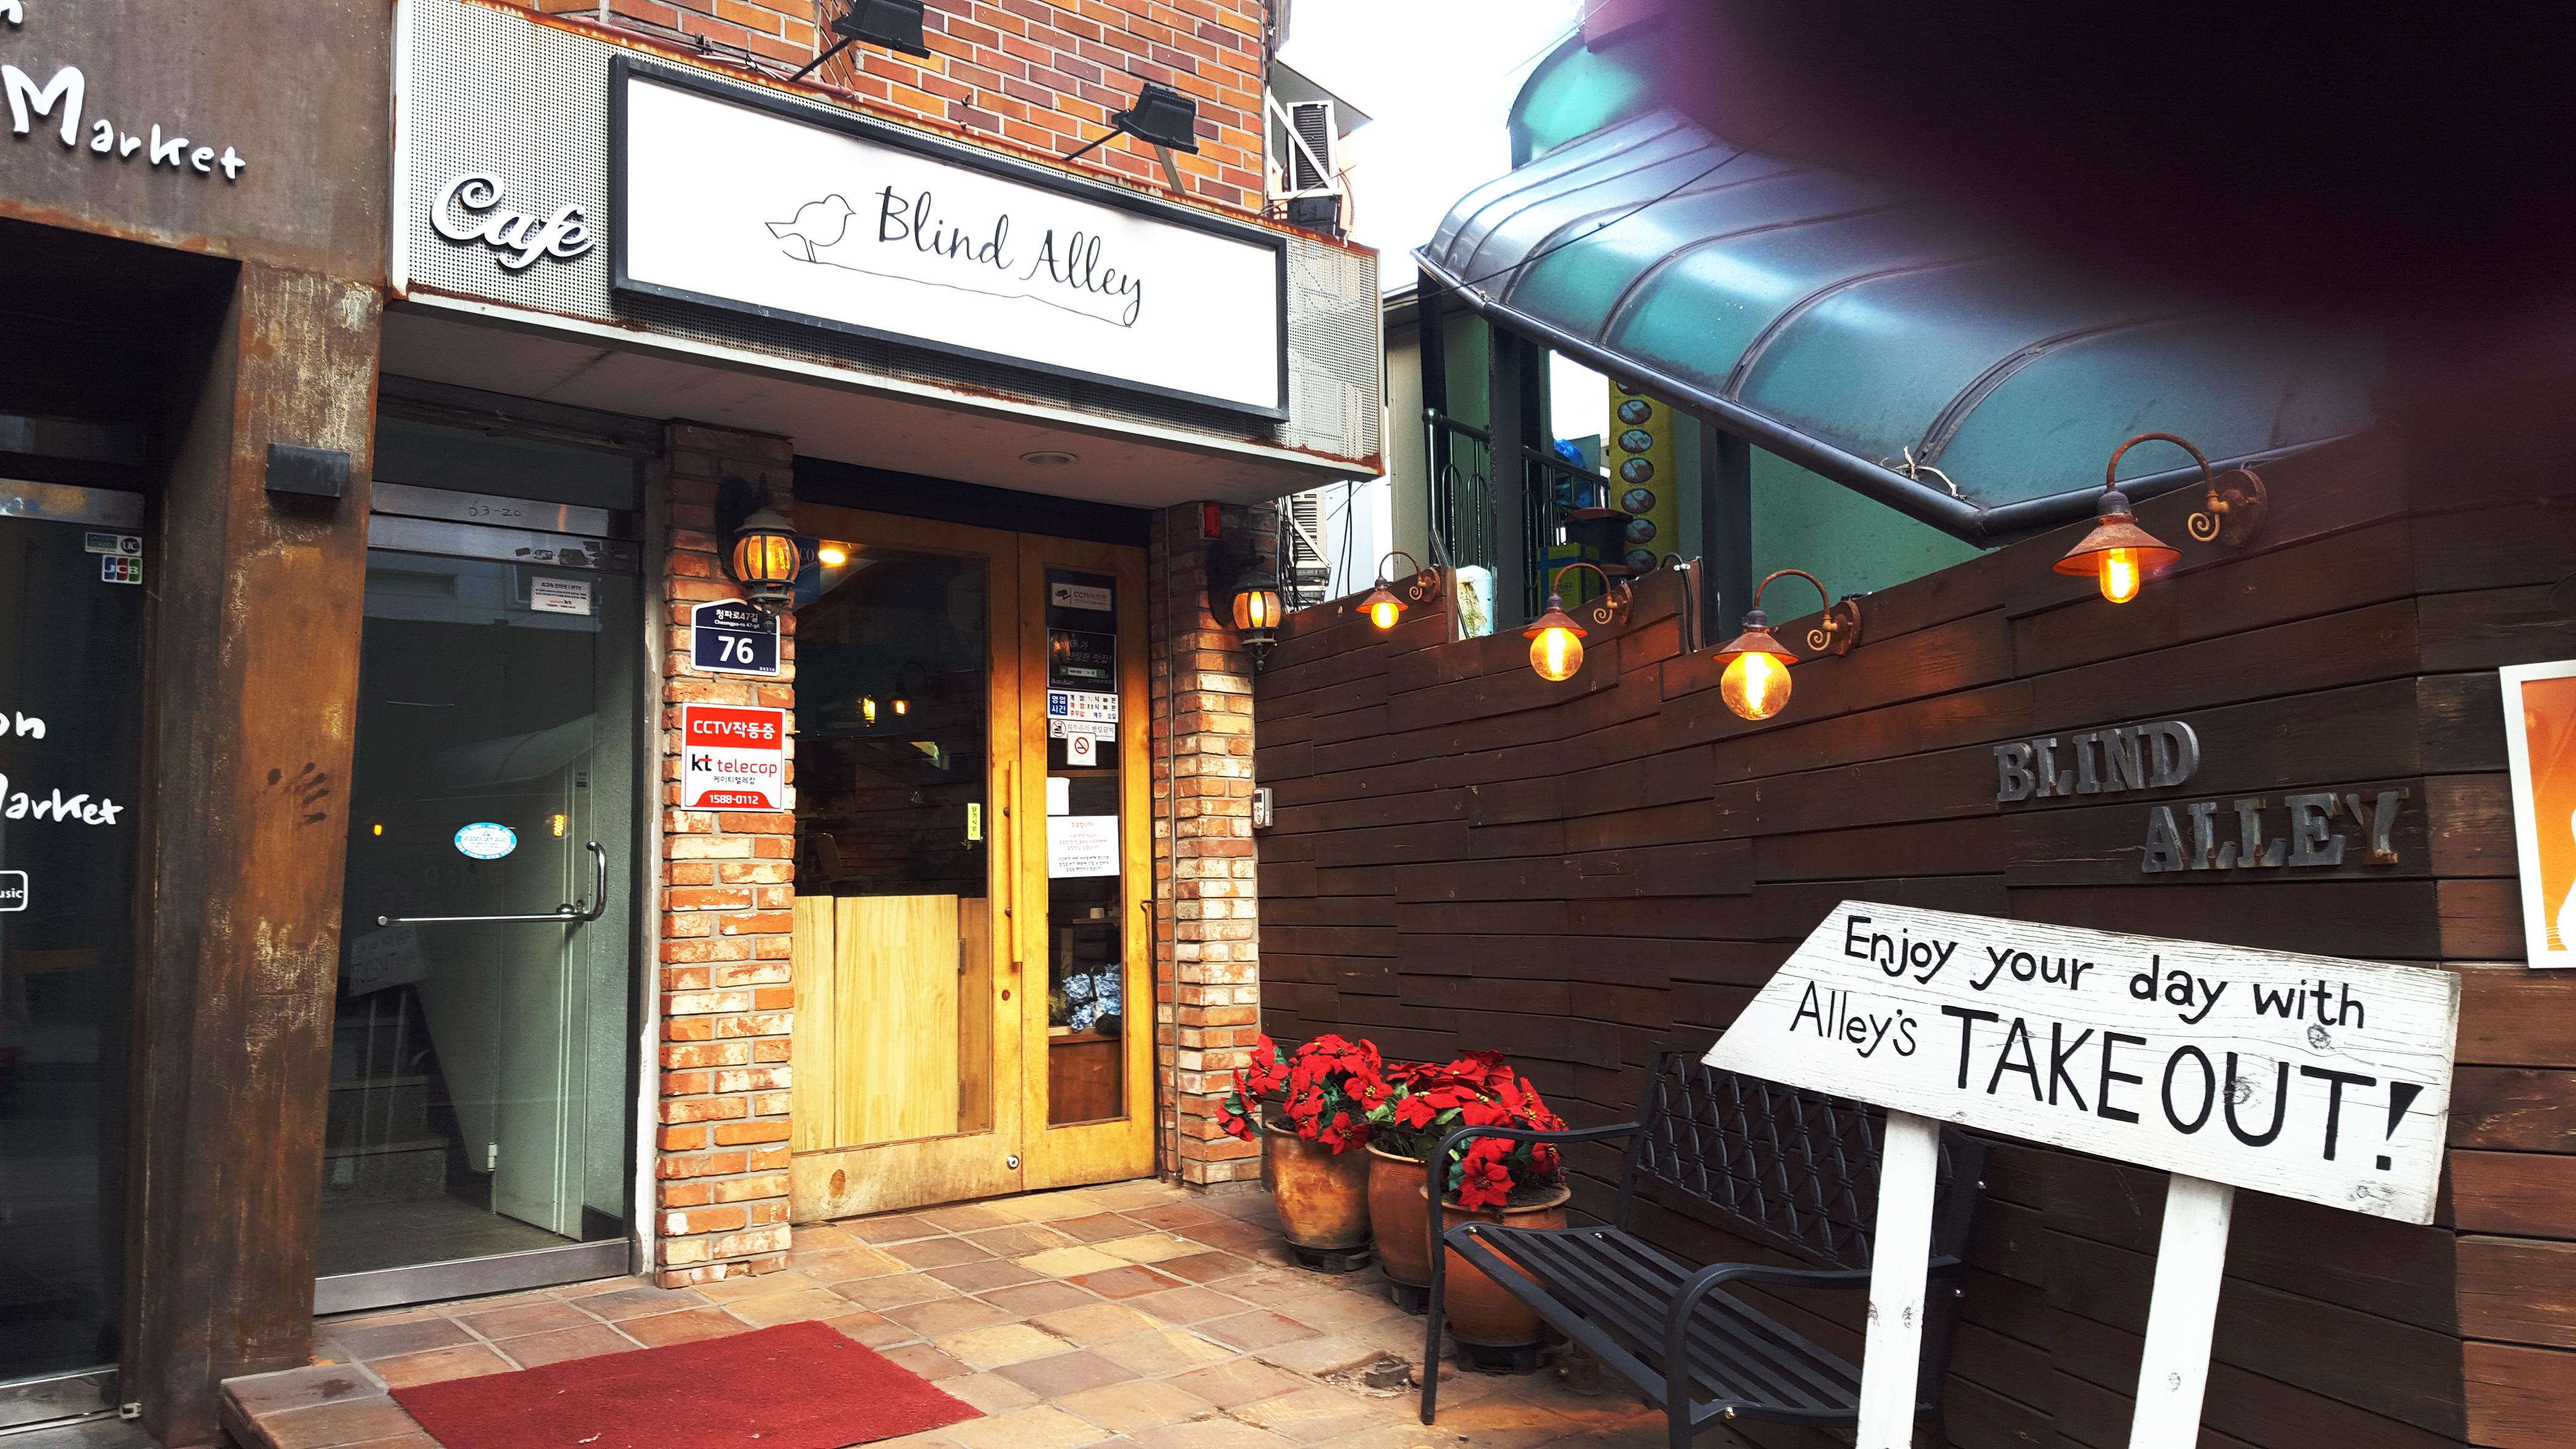 The Blind Alley - Raccoon Cafe